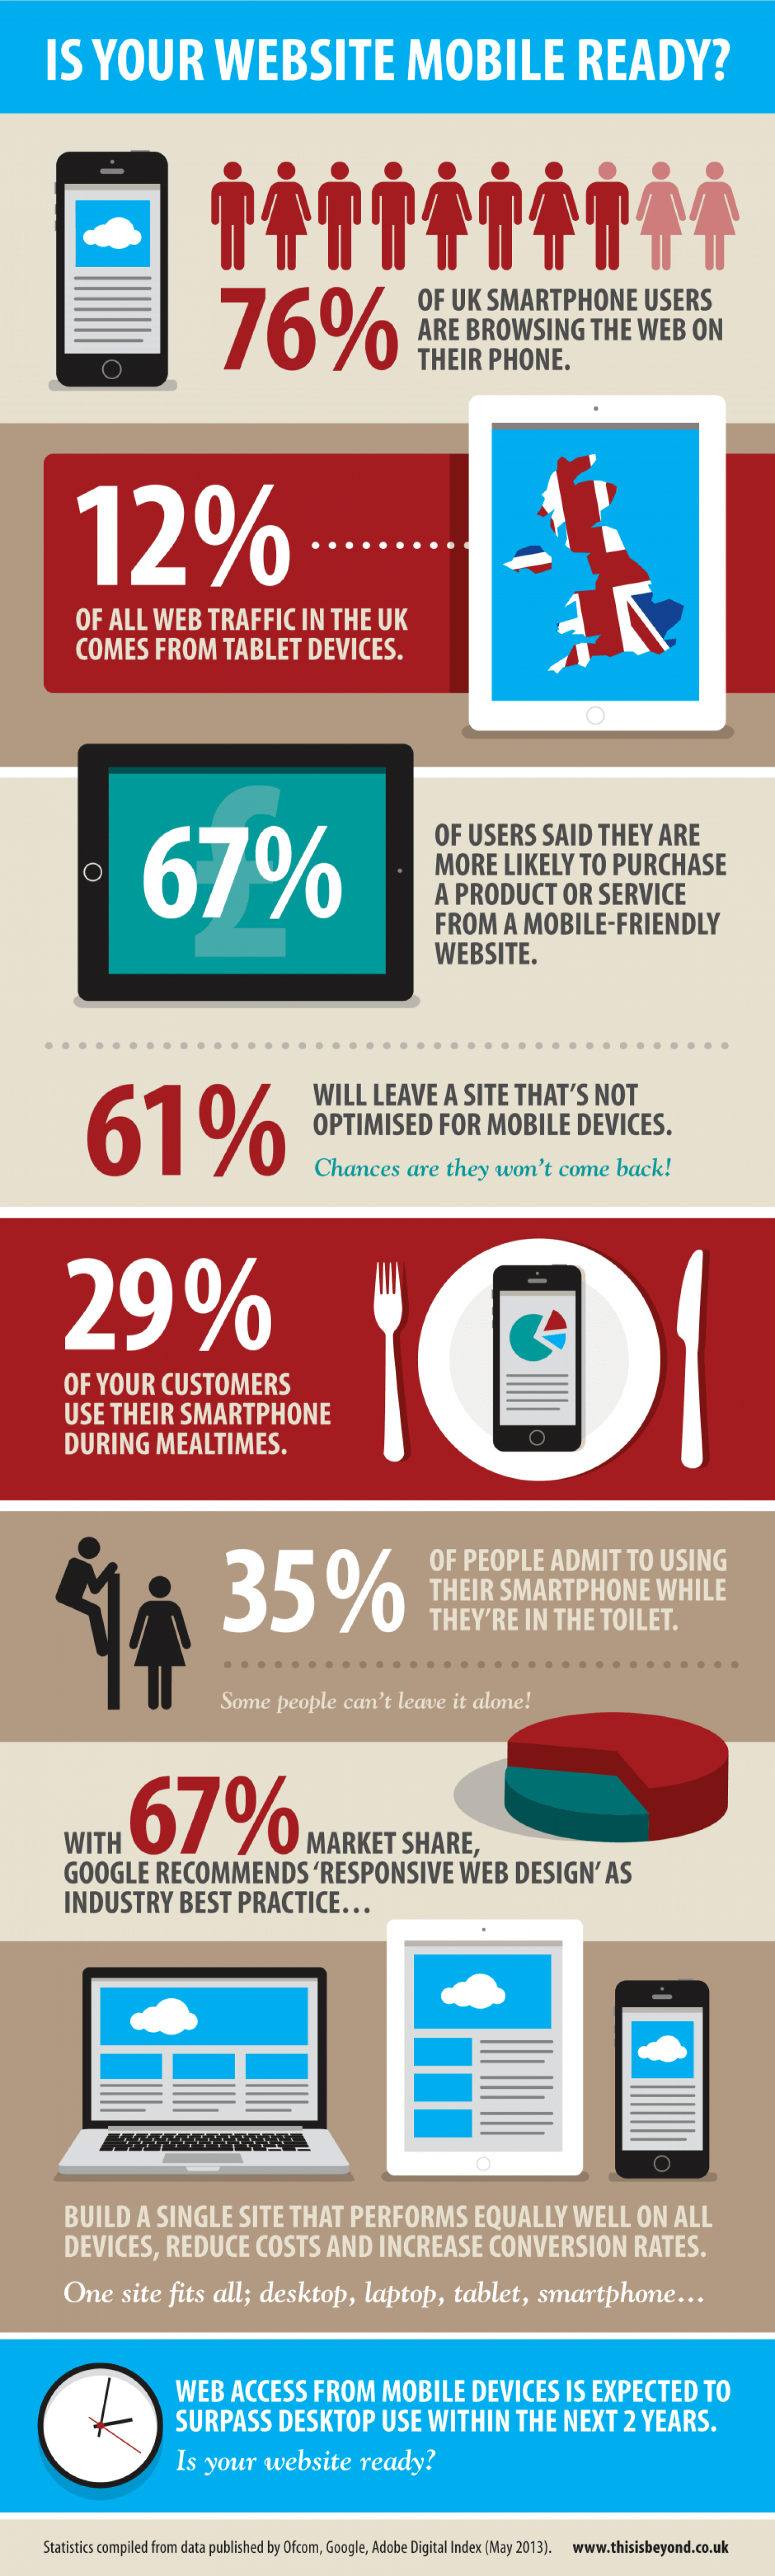 Is your website mobile ready? Infographic